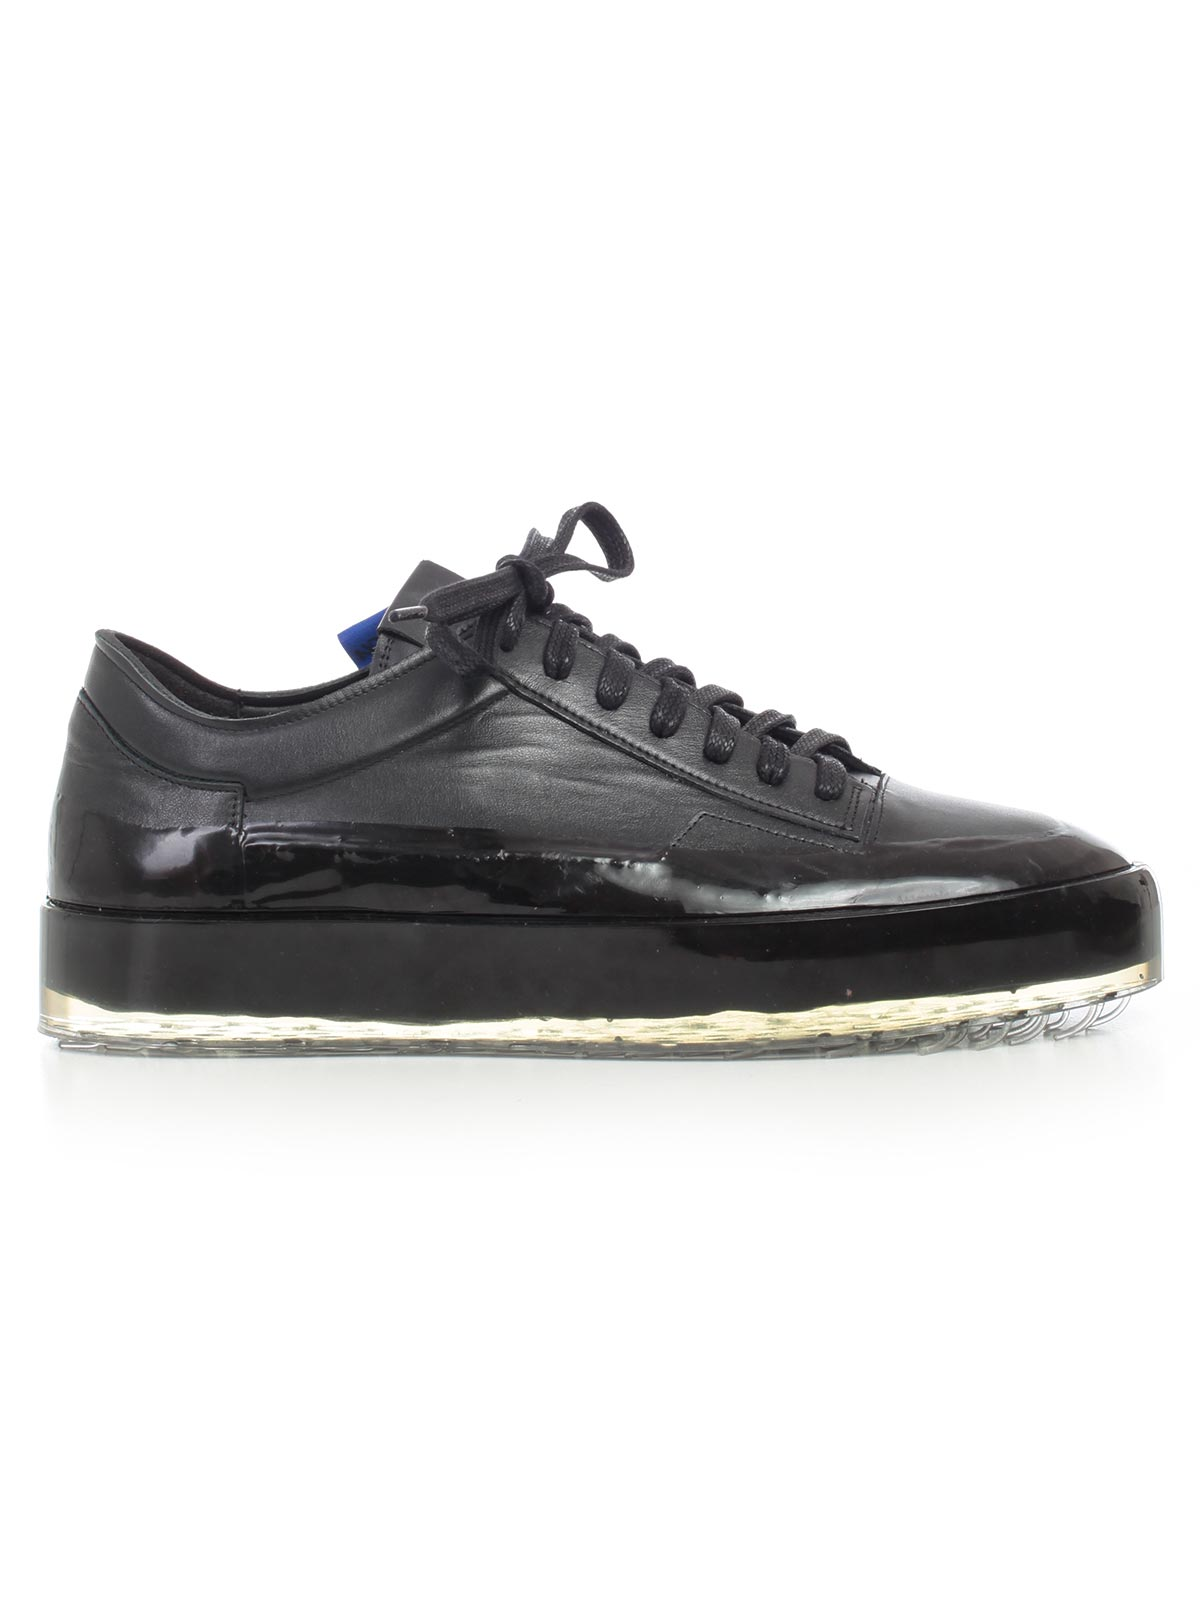 Picture of Rbrsl Rubber Soul Lace Up Shoes